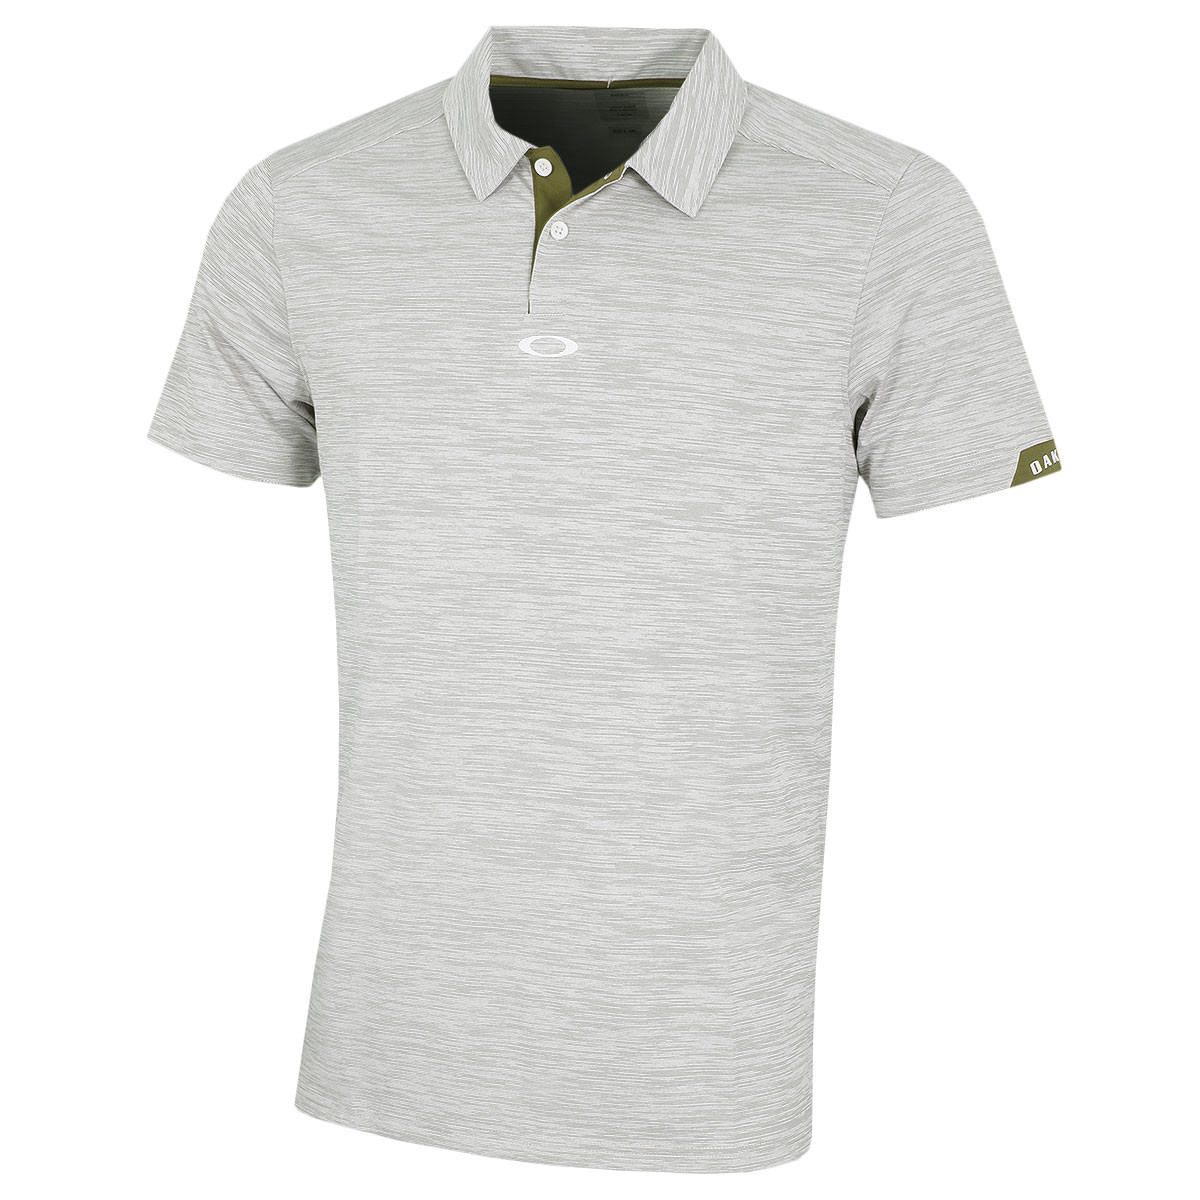 289e997c9a Oakley Mens 2019 Gravity Moisture Wicking Tailored Golf Polo Shirt 26% OFF  RRP